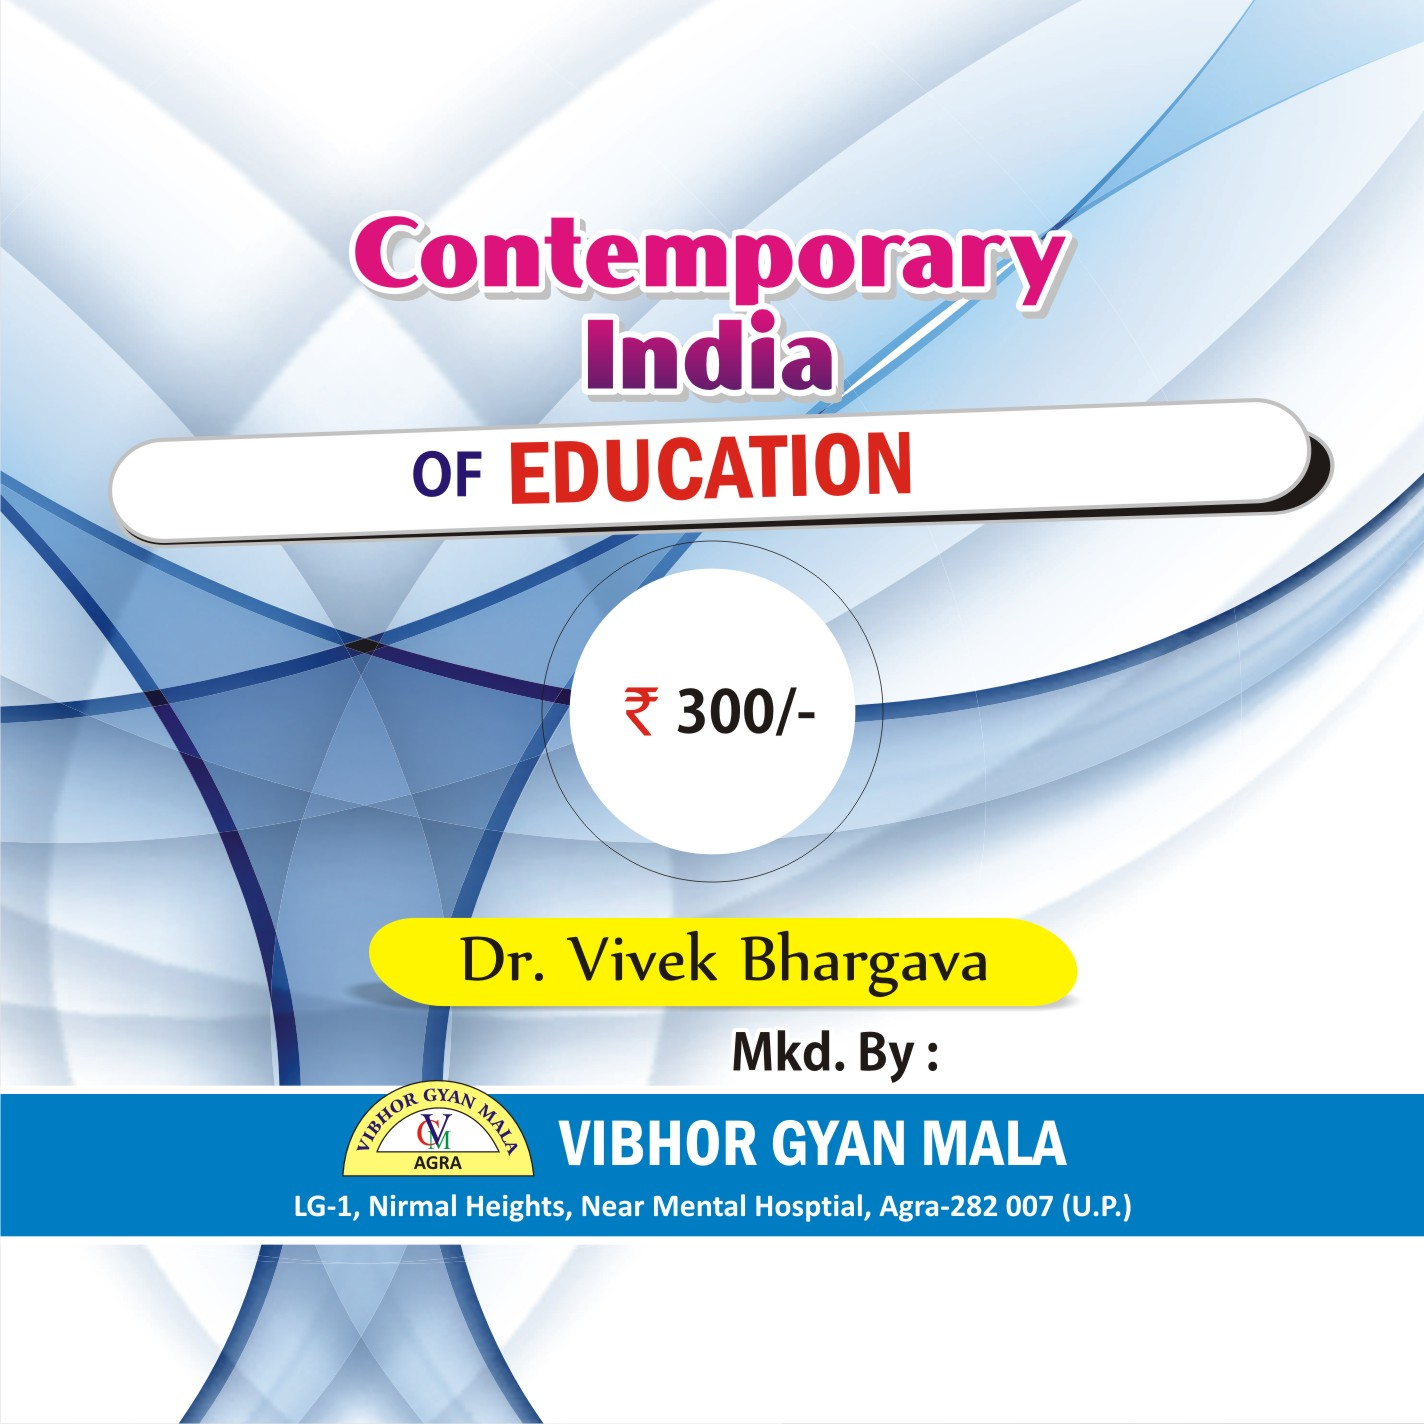 CONTEMPORARY-INDIA-OF-EDUCATION